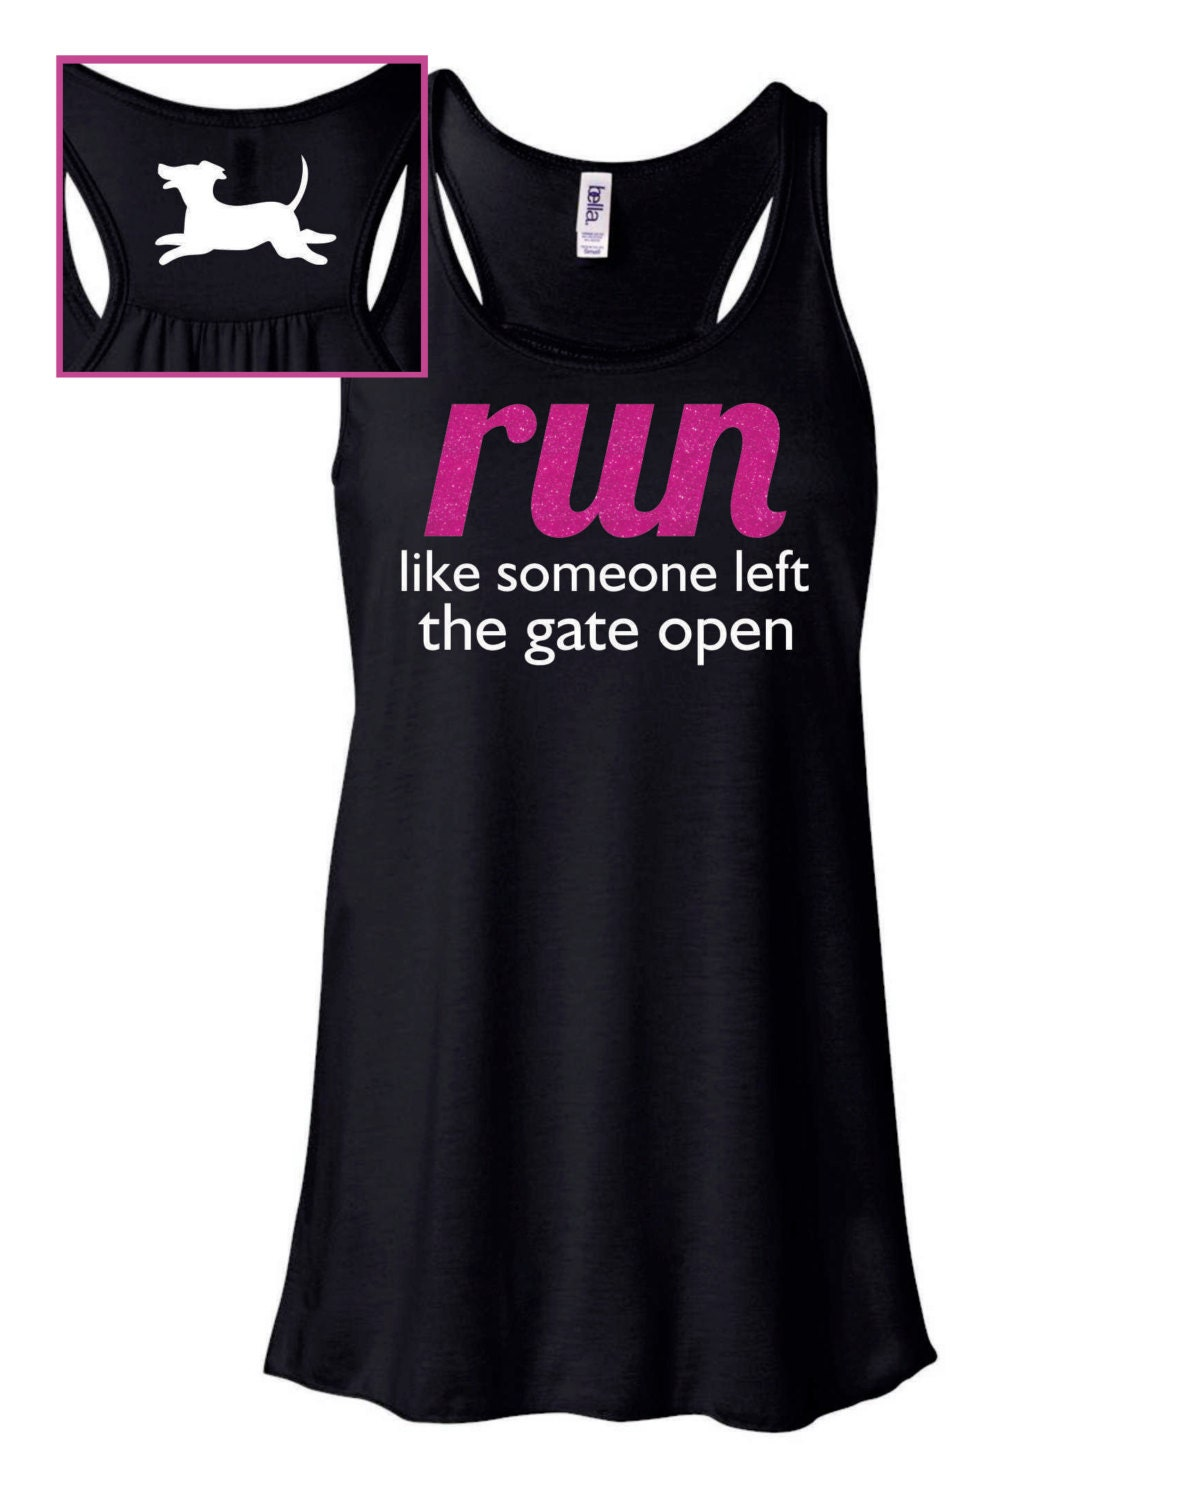 Live Like Someone Left The Gate Open Quote: Run Like Someone Left The Gate Open Flowy Funny Workout Tank